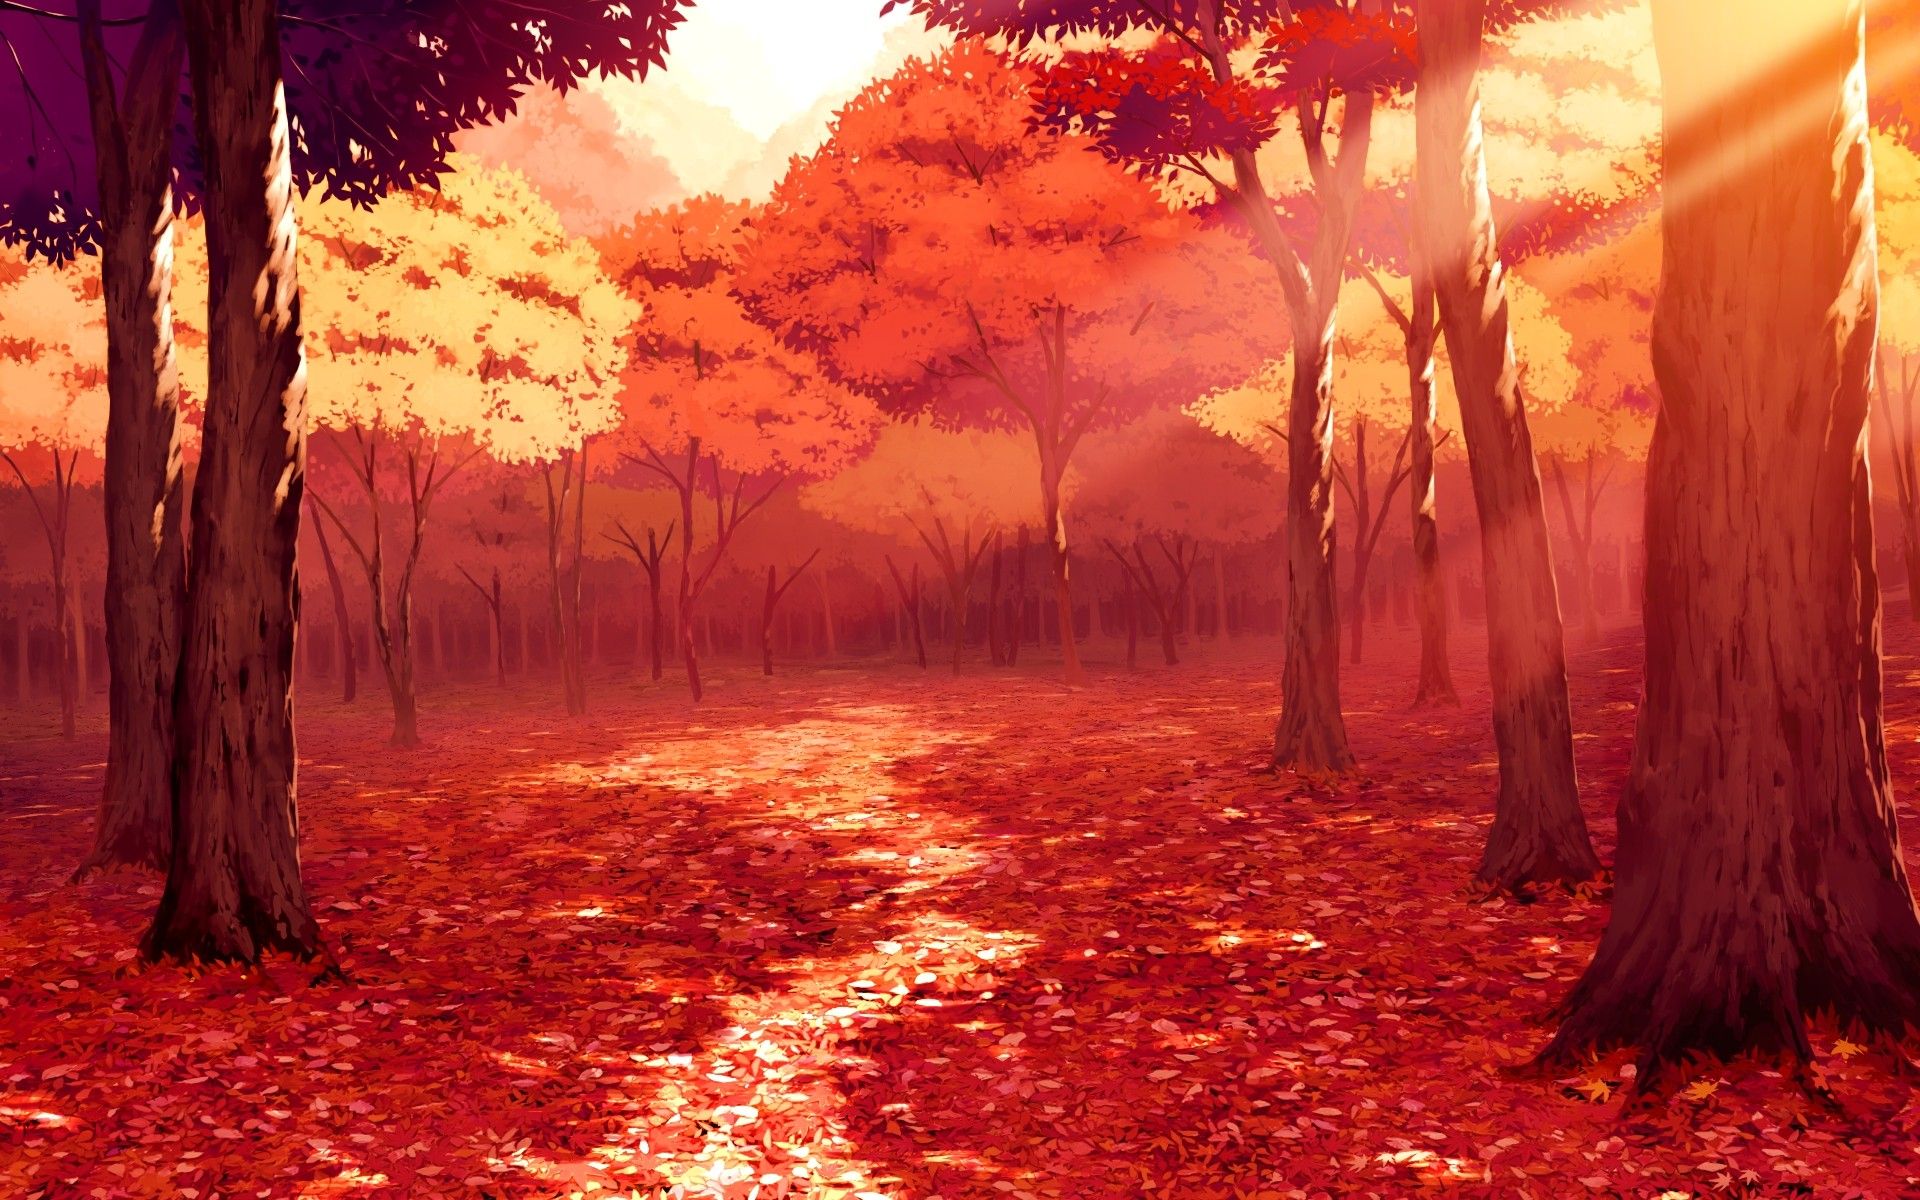 Drawn scenic emotional Anime  Wallpapers Art autumn